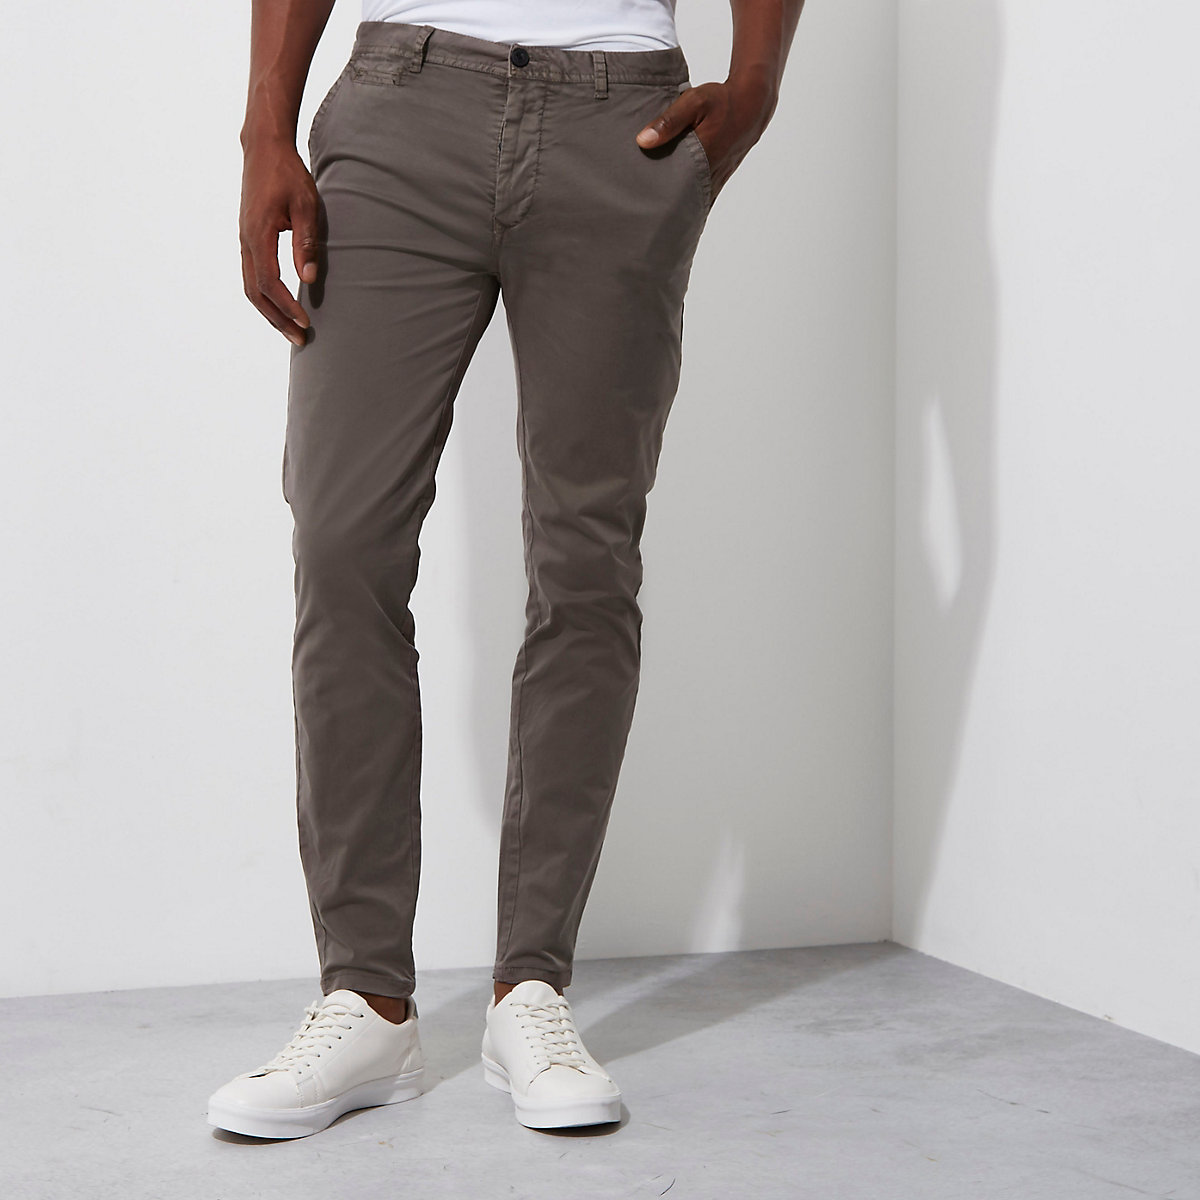 Grey super skinny fit chino pants